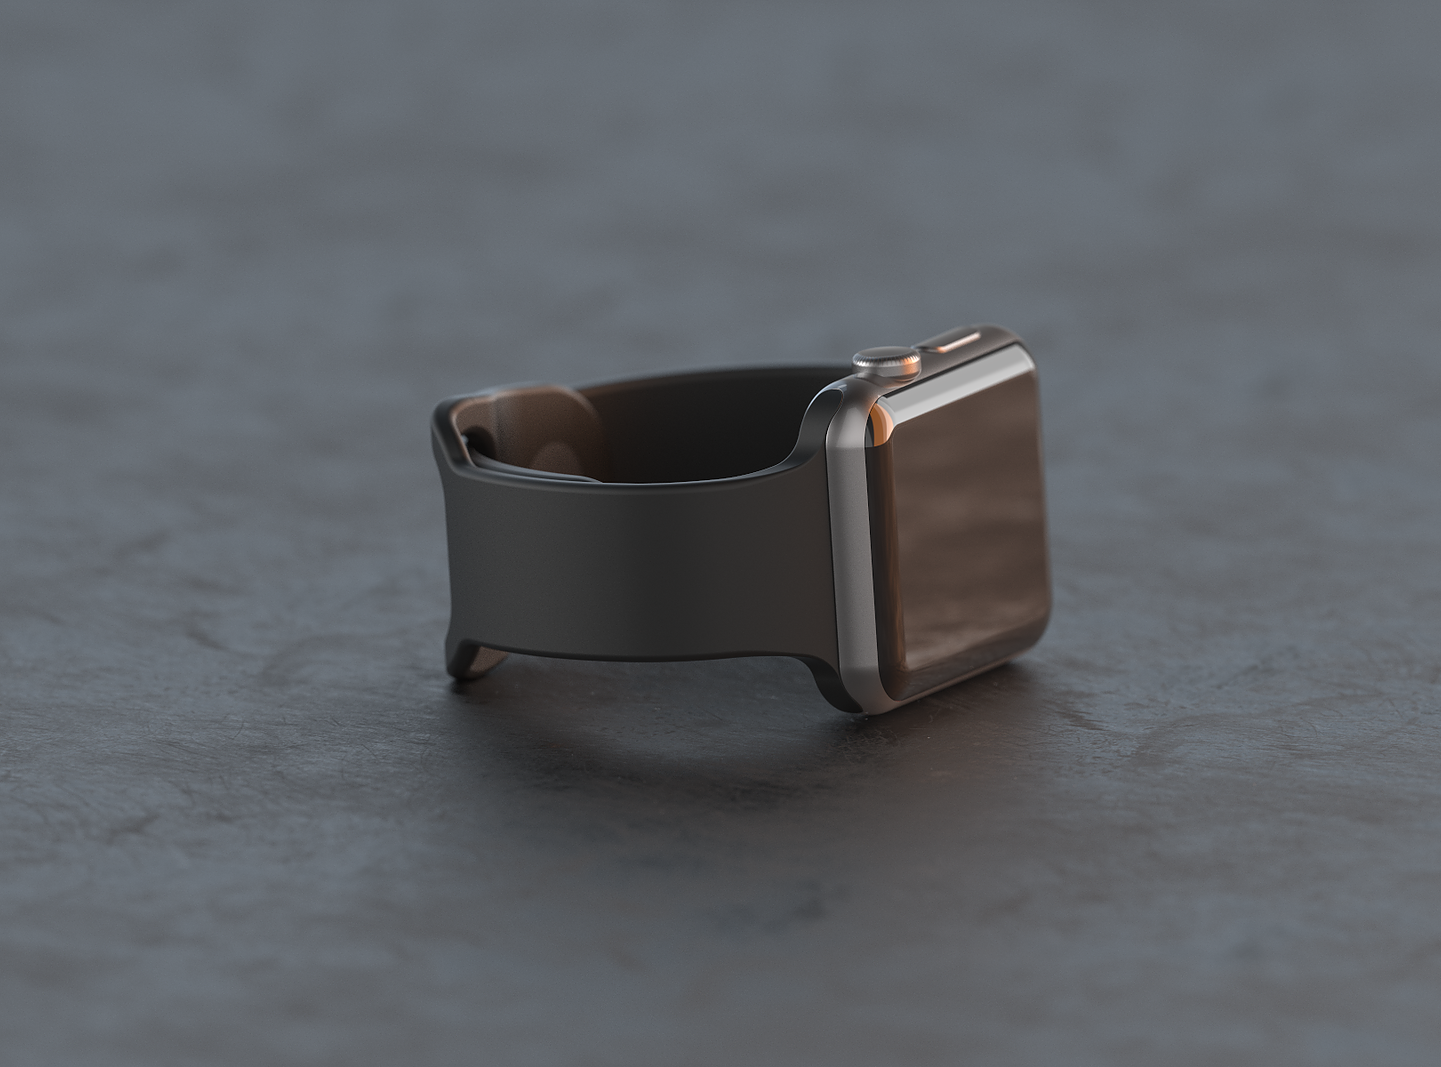 Geert van Uffelen Apple Watch 2 5